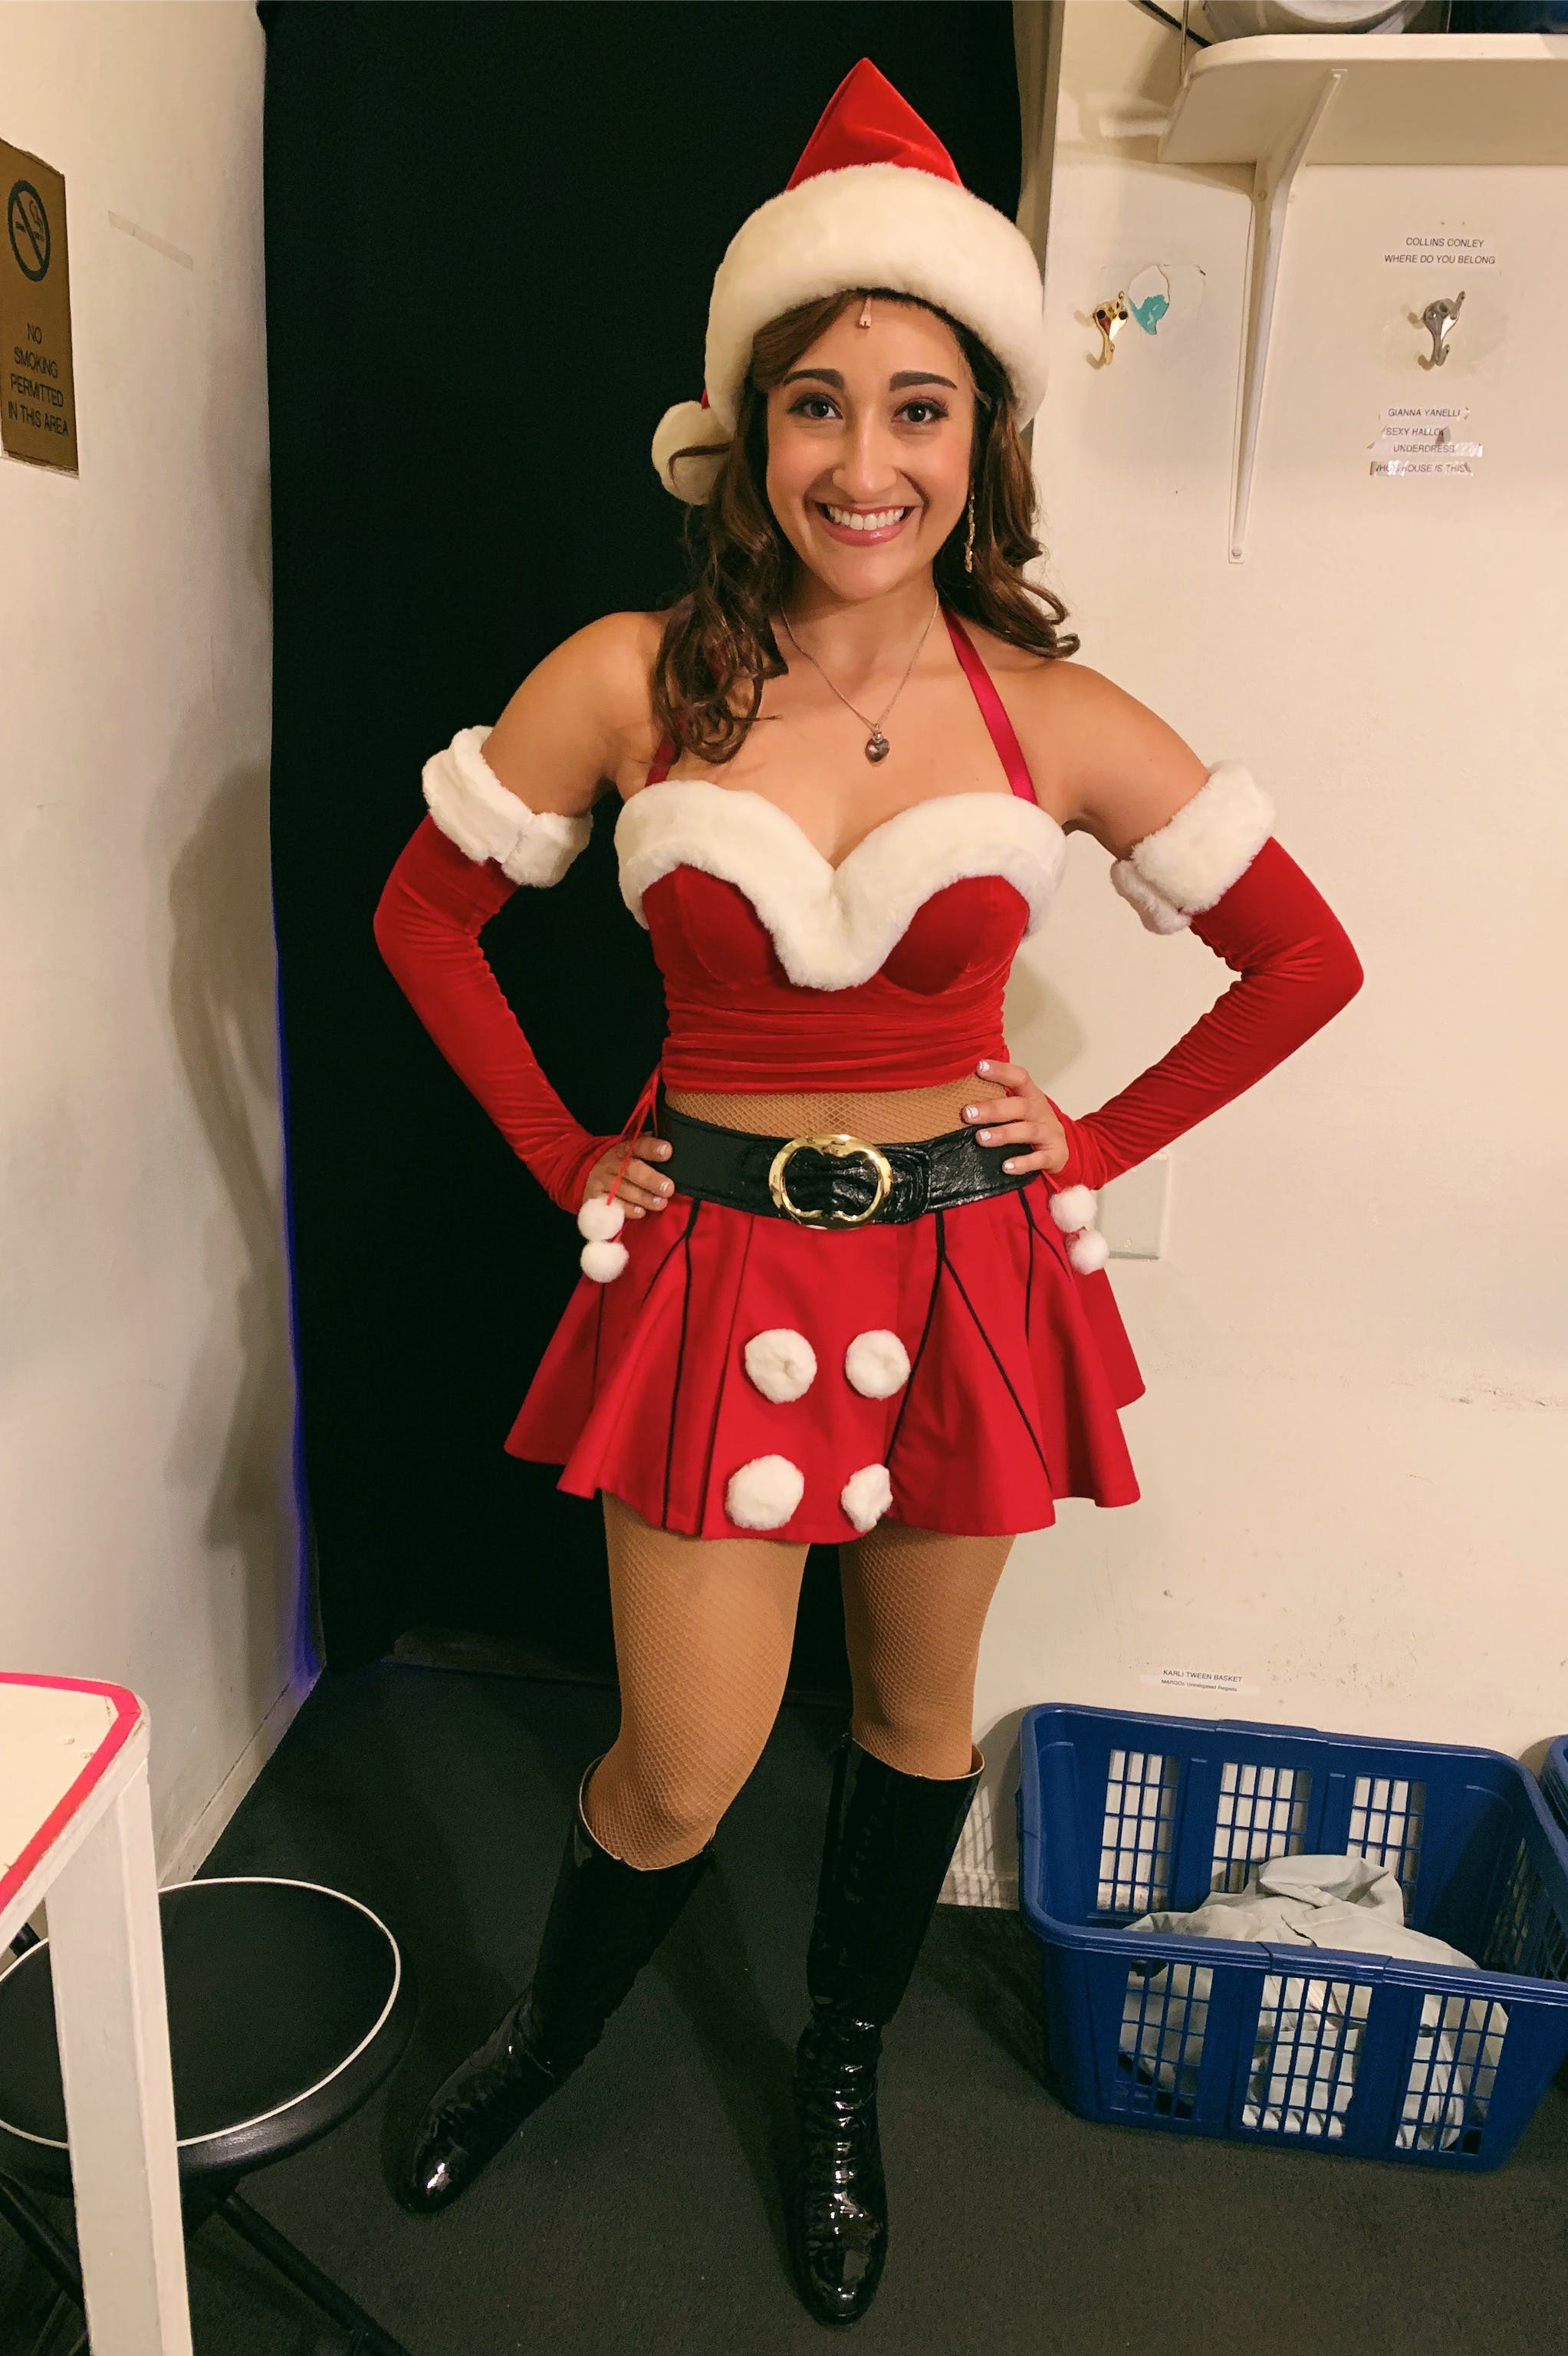 Mean Girls Star Krystina Alabado Shares All Her Fetch Gretchen Wieners Costumes The Daily Scoop Look so fetch with our ultimate gretchen weiners halloween costume guide. her fetch gretchen wieners costumes